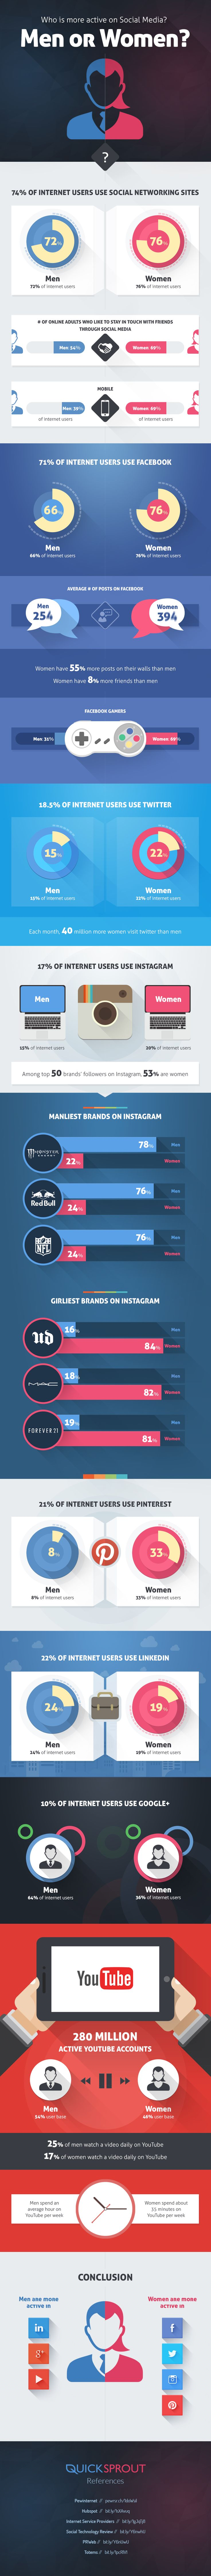 Are men or women more active on Social Media? Better understand where your target market spends their time with this #infographic